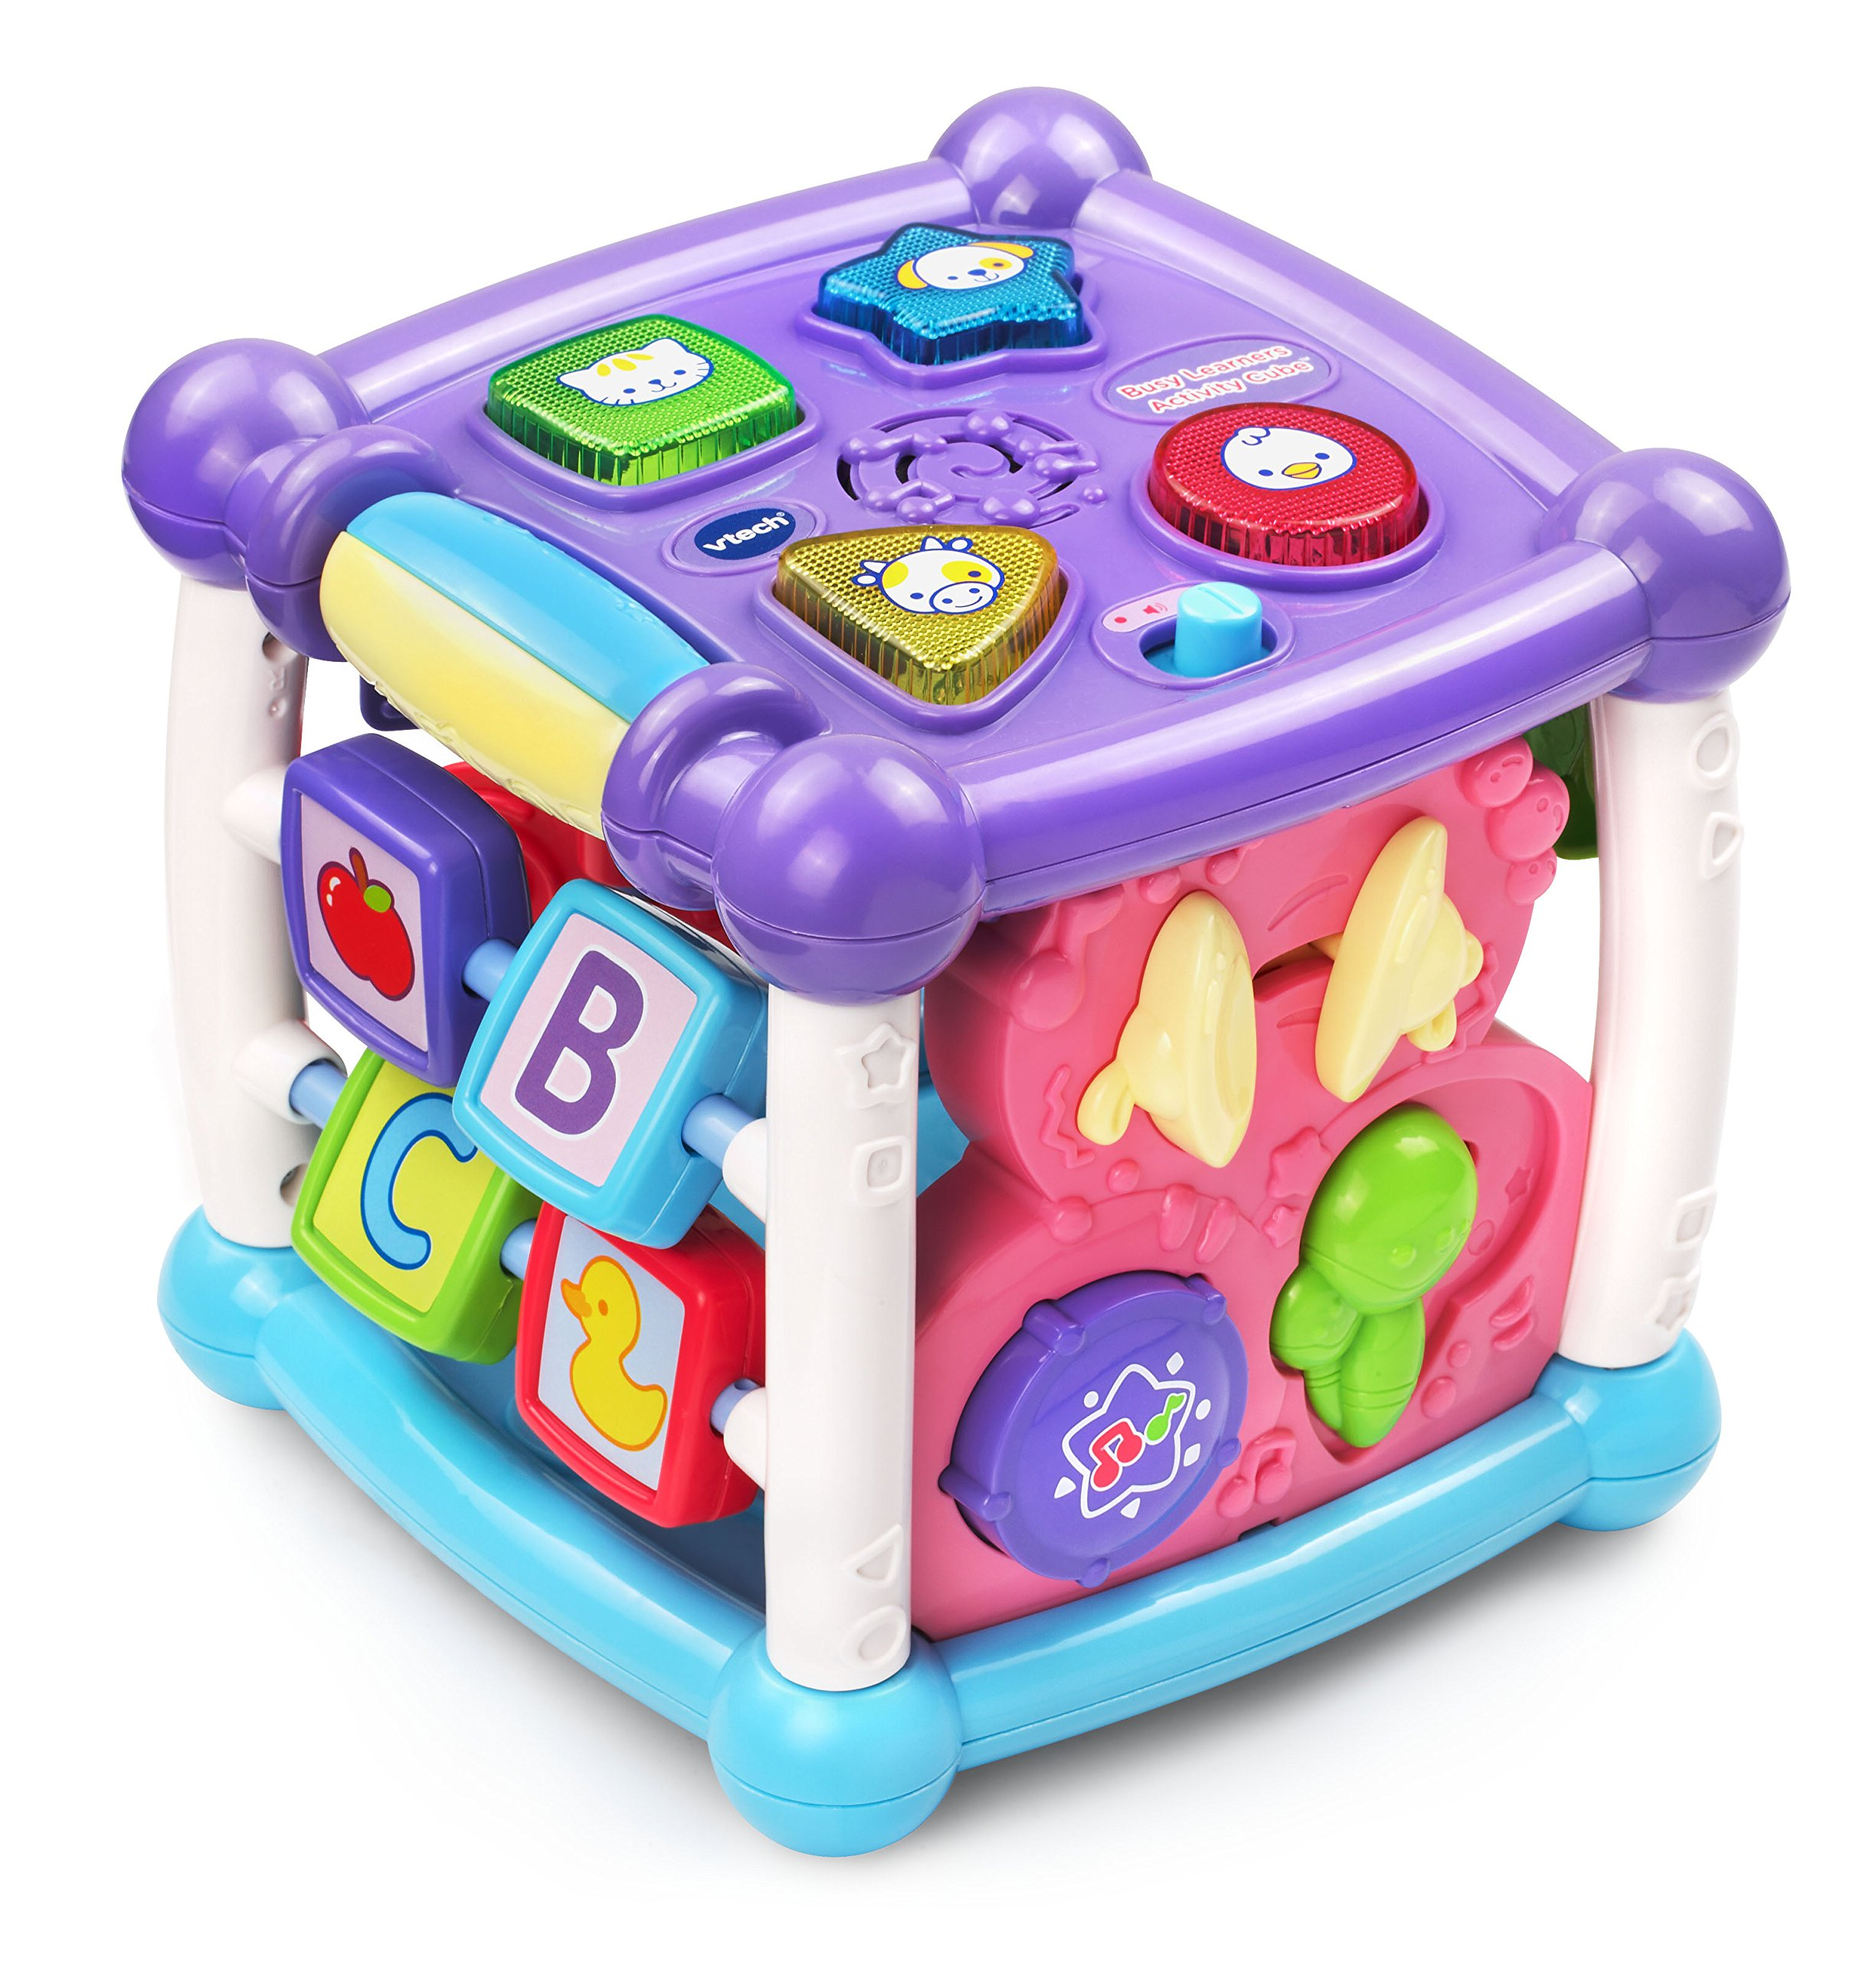 VTech Busy Learners Activity Cube, Purple by VTech